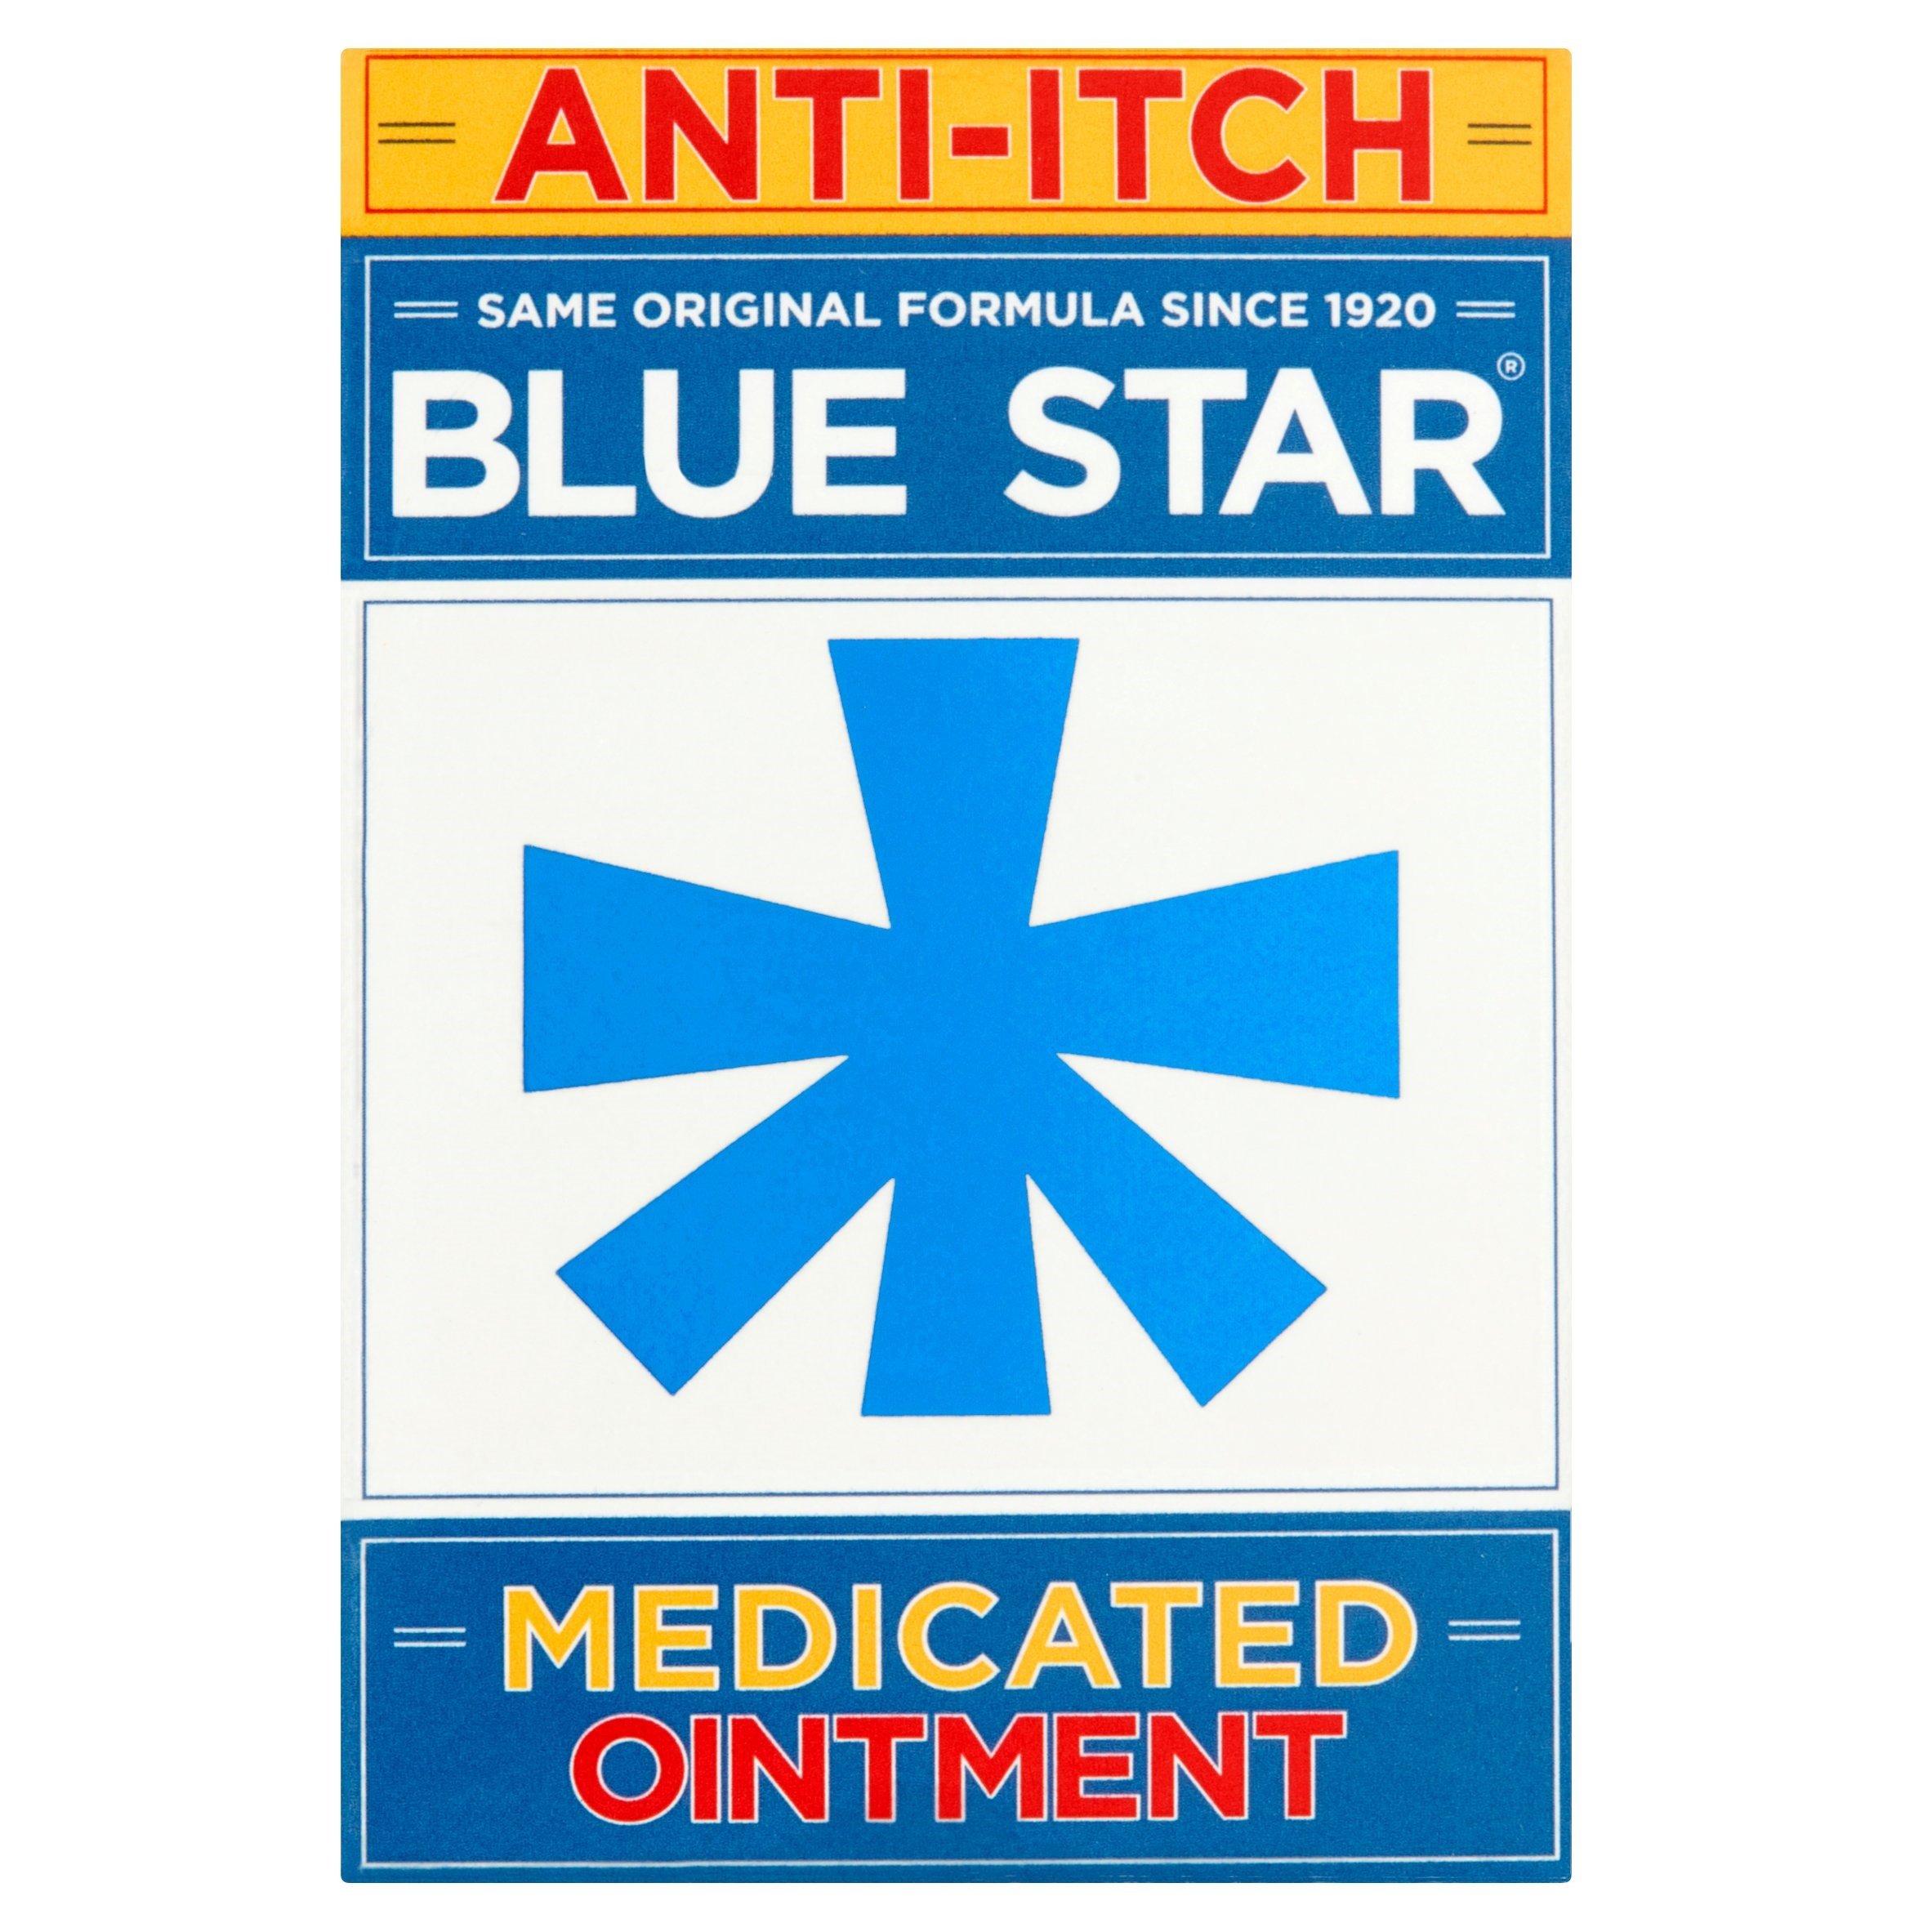 Blue Star Anti Itch Ointment, 2 Oz Jar